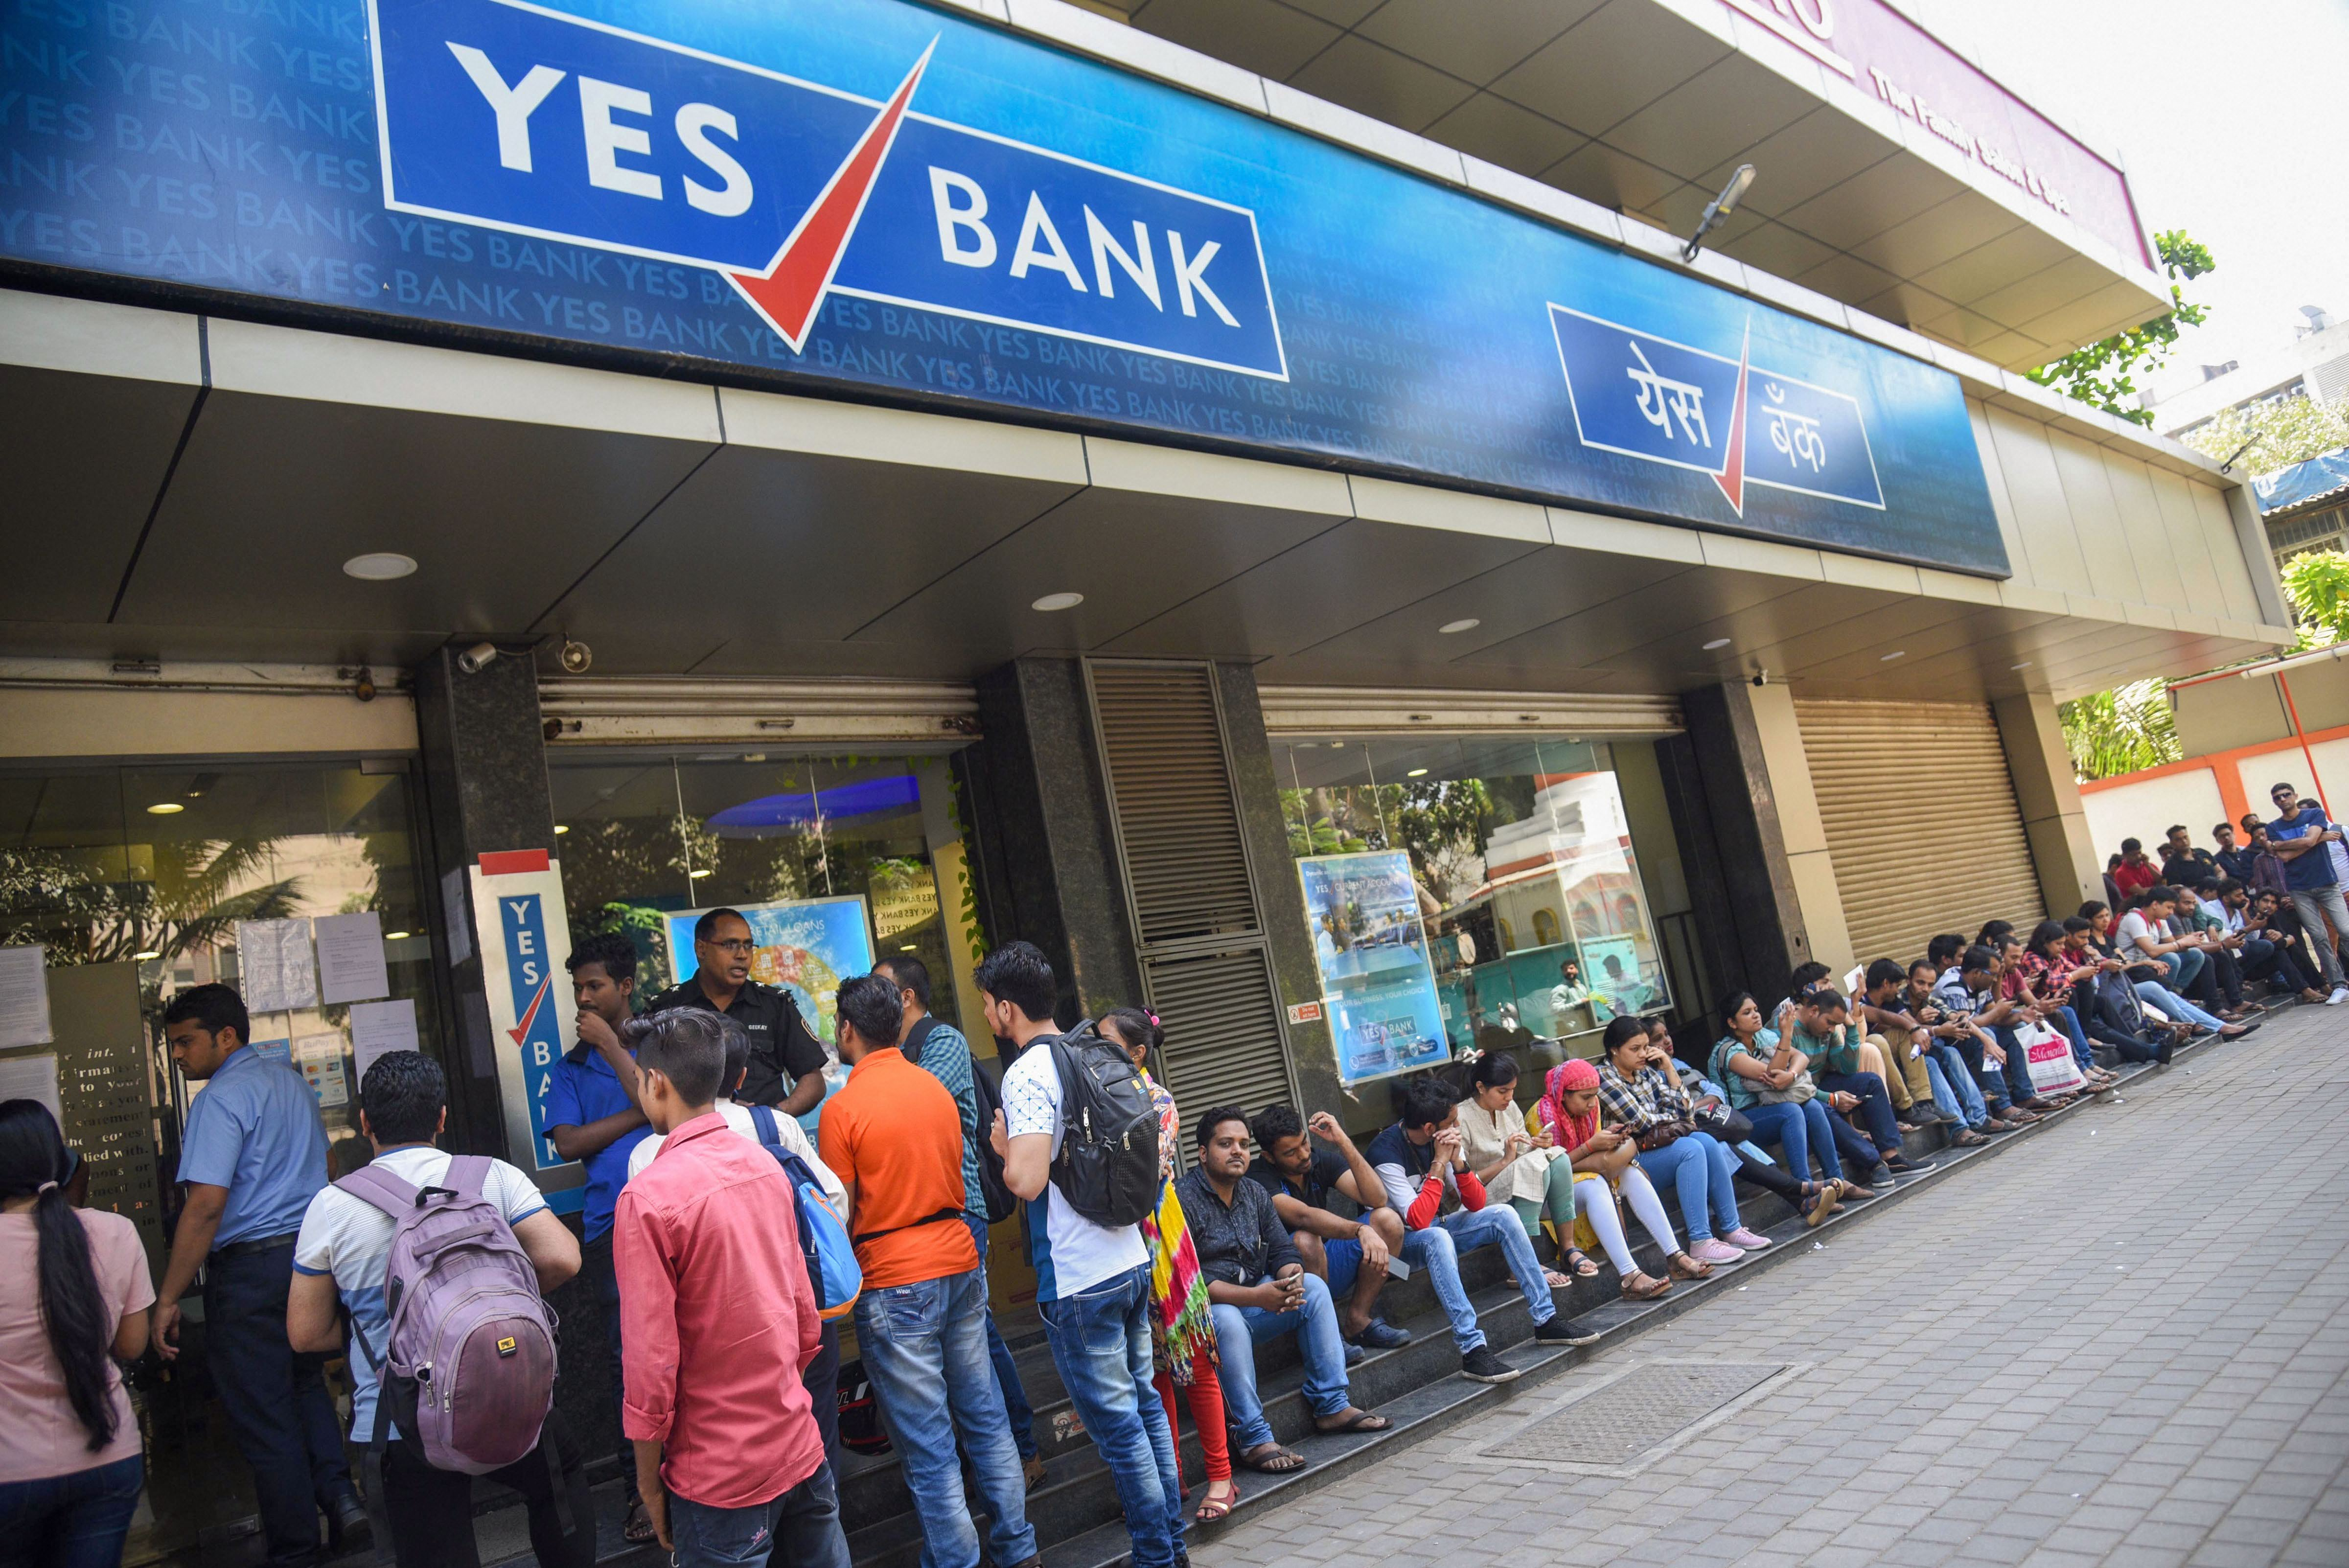 Account holders queue up outside Yes Bank to withdraw money, in Mumbai, Saturday, March 7, 2020